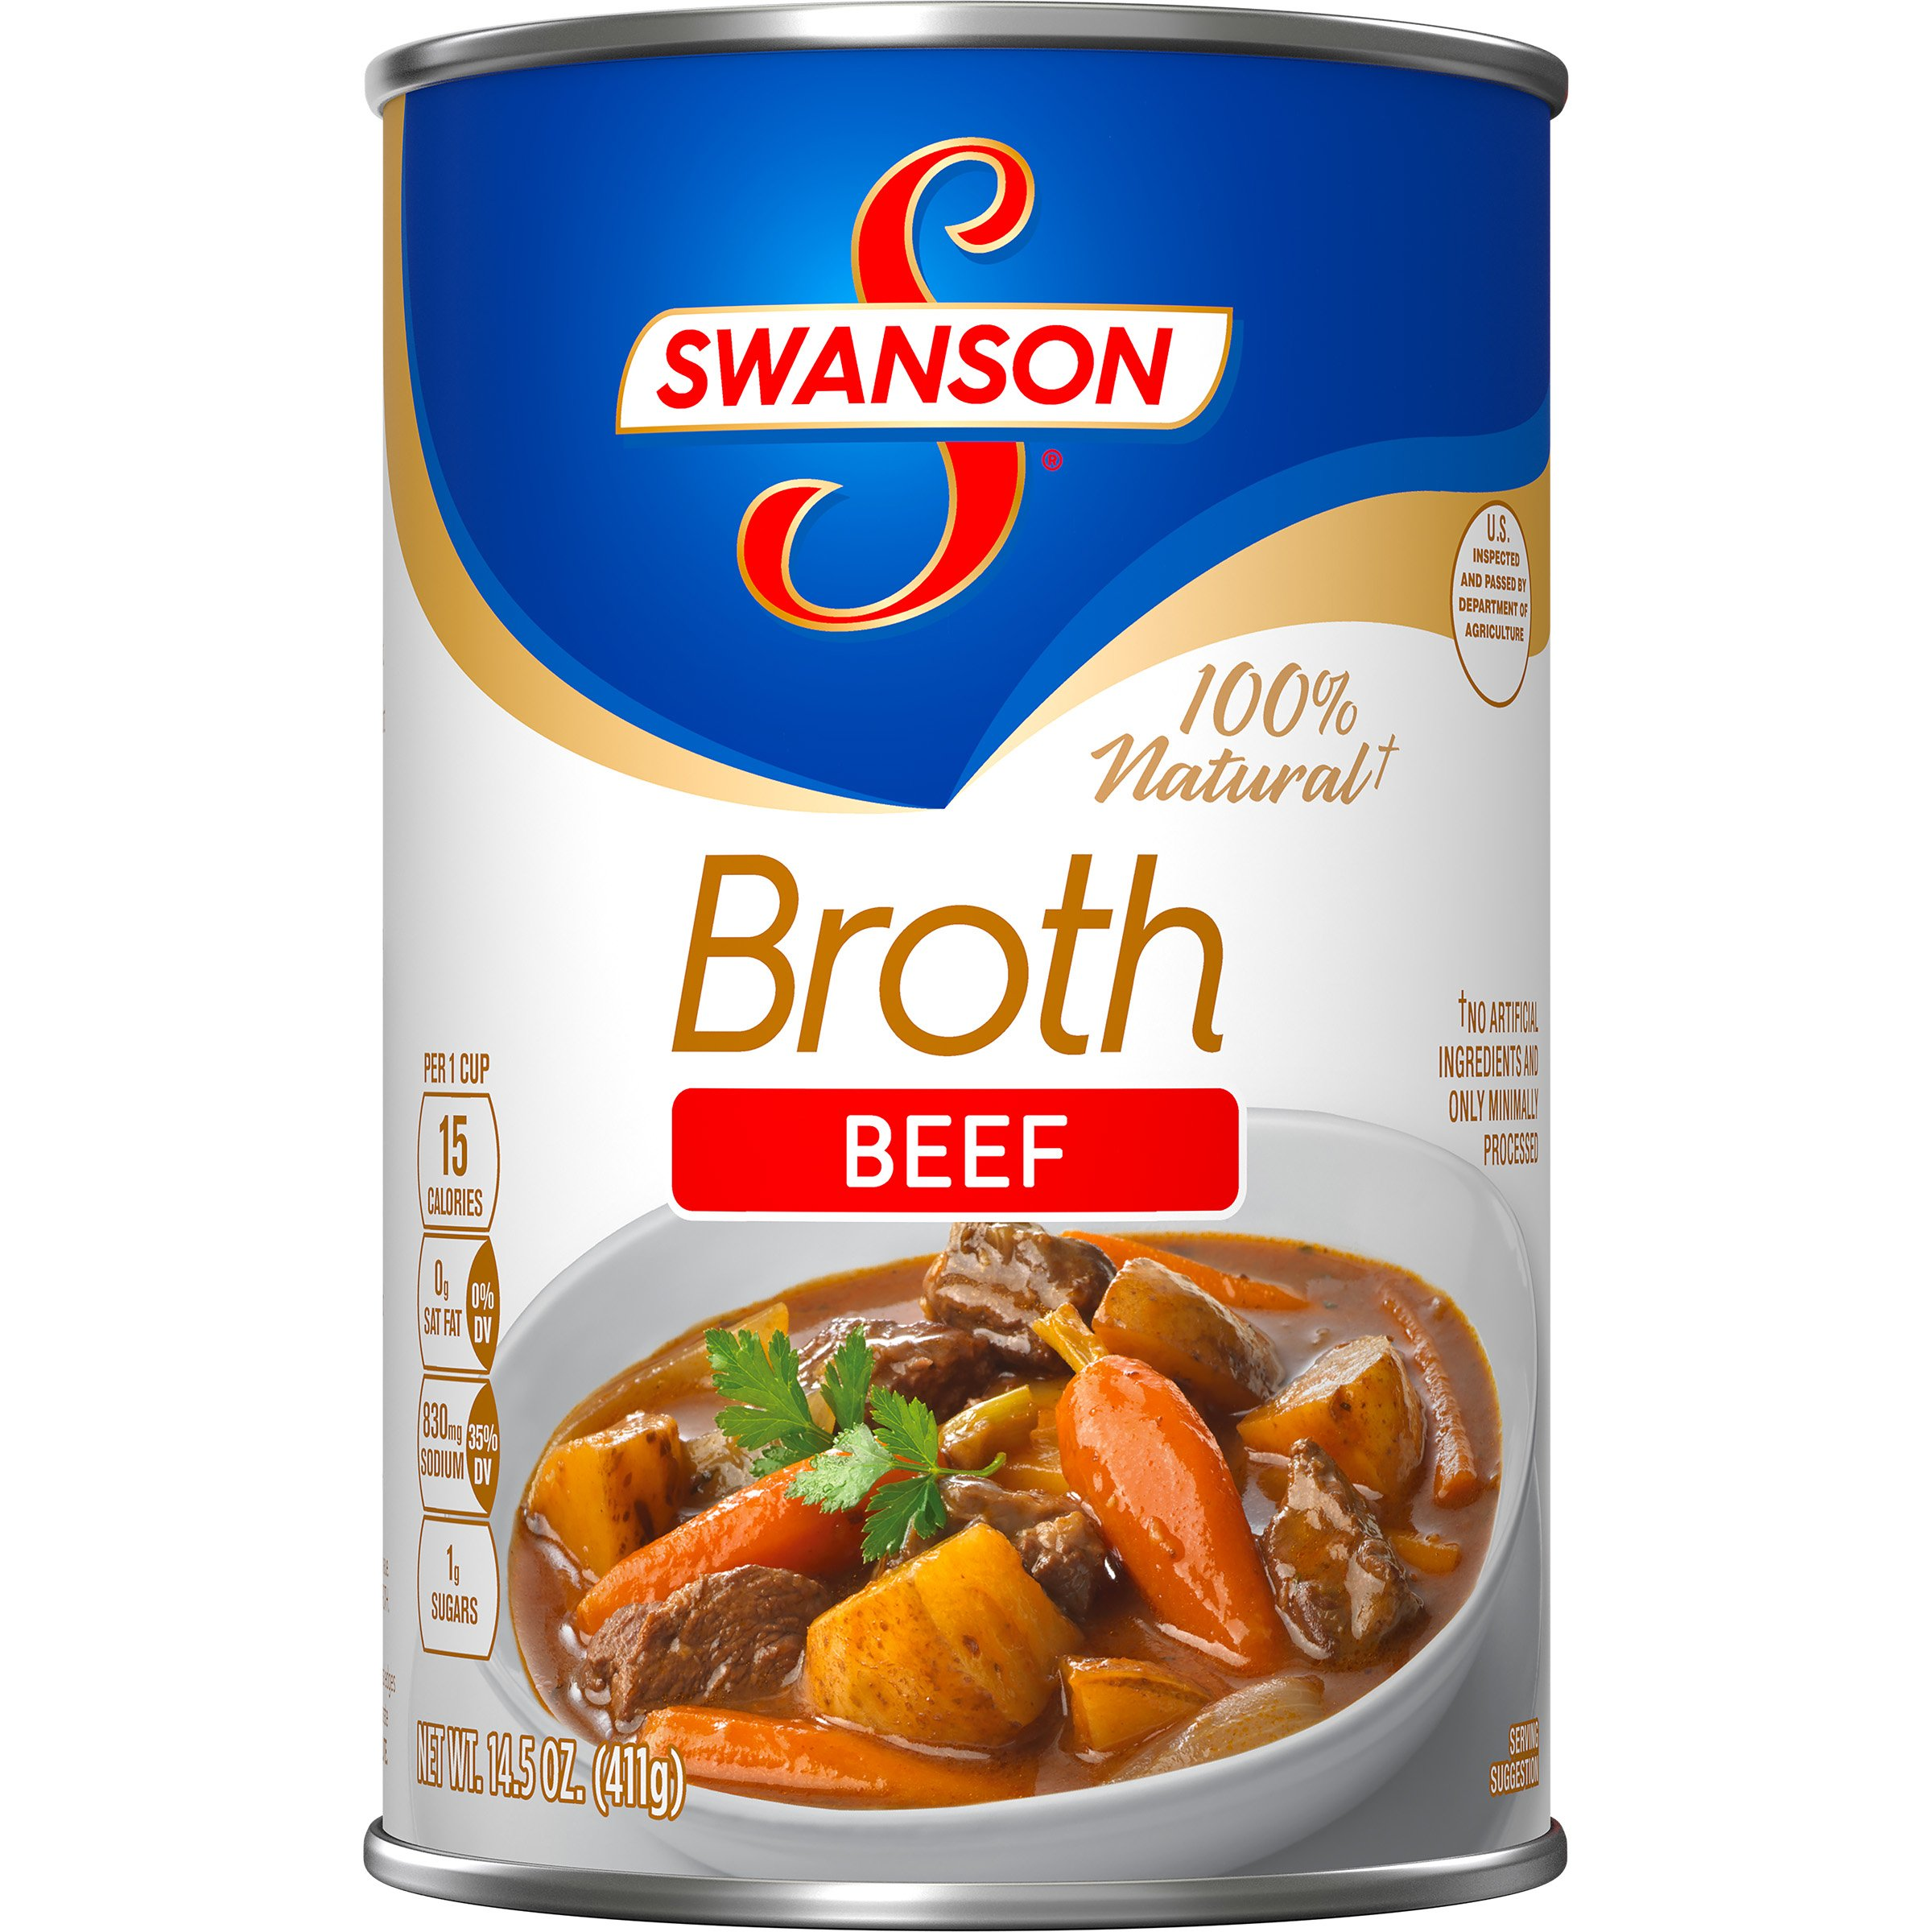 Swanson Broth, Beef, 14.5 Ounce